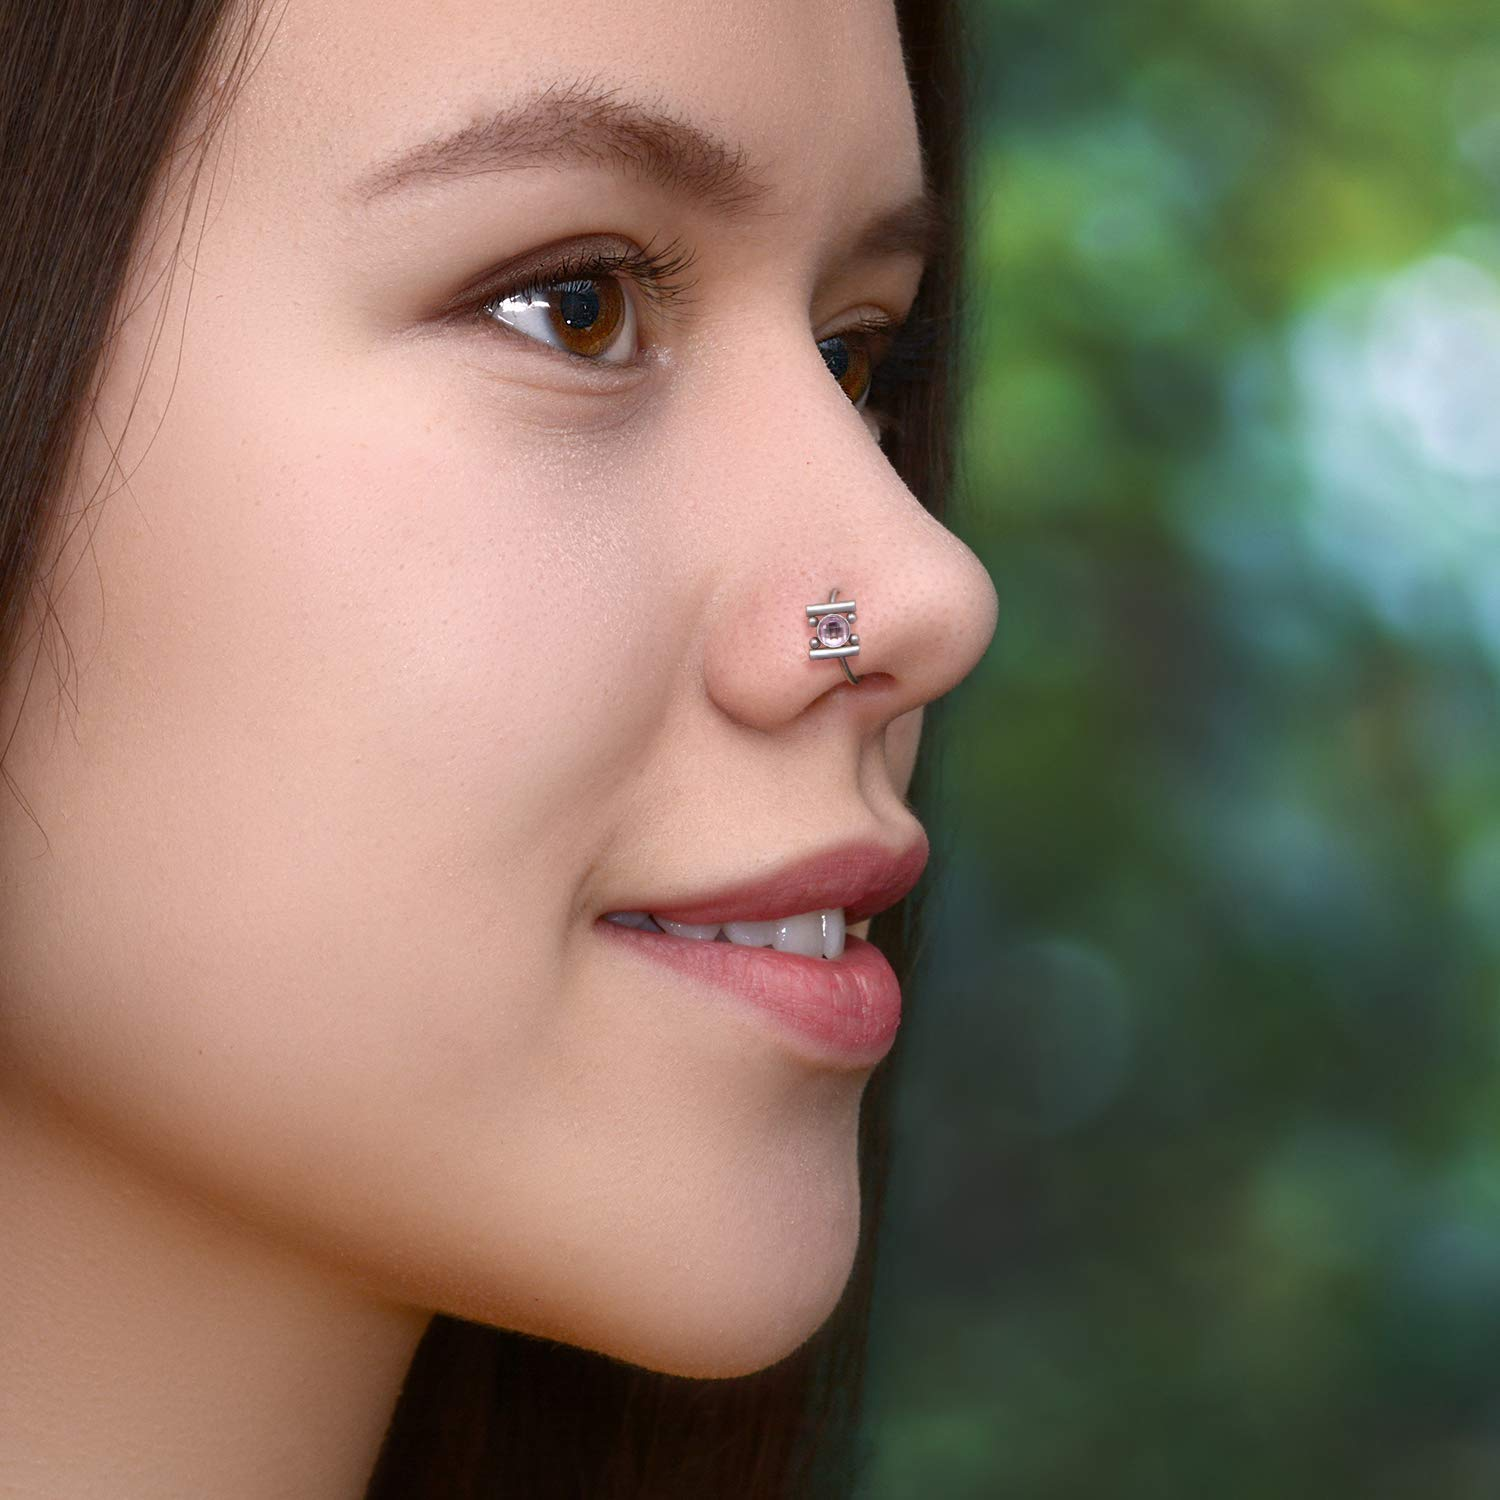 Nose Piercing Surgical Steel Nostril Hoop Jewelry Seamless Nose Hoop Body Piercing Earring Nose Ring with CZ Stones